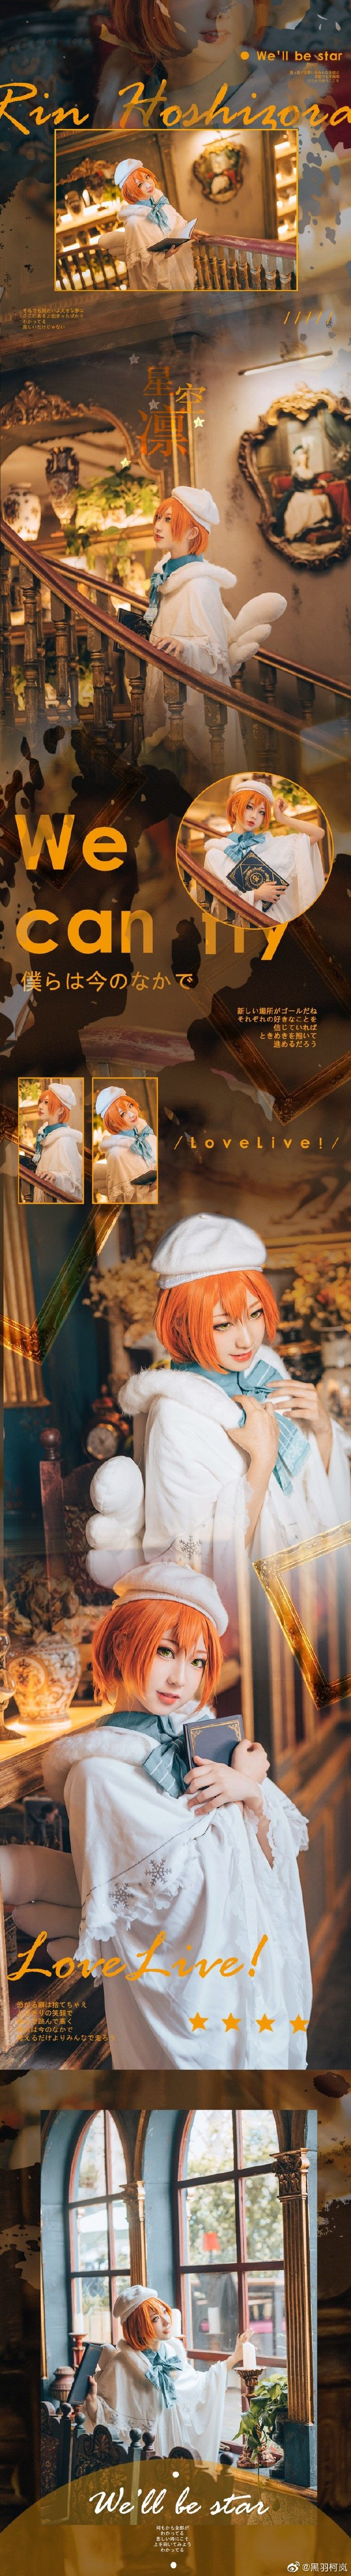 【cos正片】《lovelive!》星空凛 cosplay欣赏 cosplay-第2张